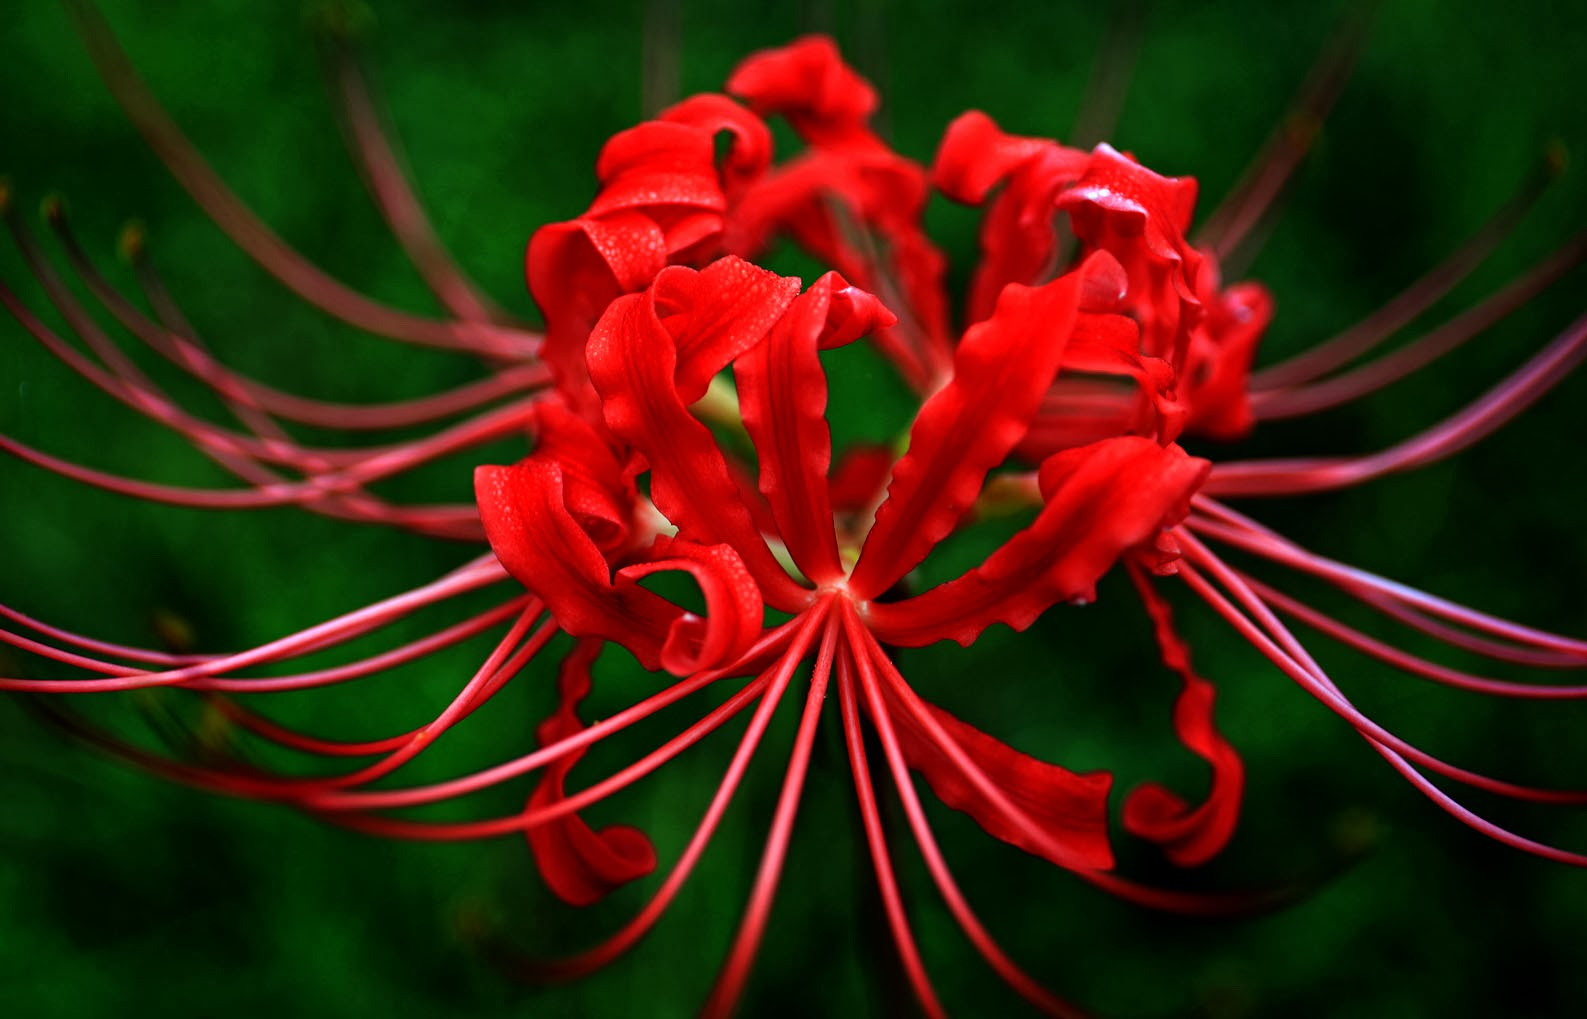 Southern lagniappe the elusive spider lilies izmirmasajfo Image collections